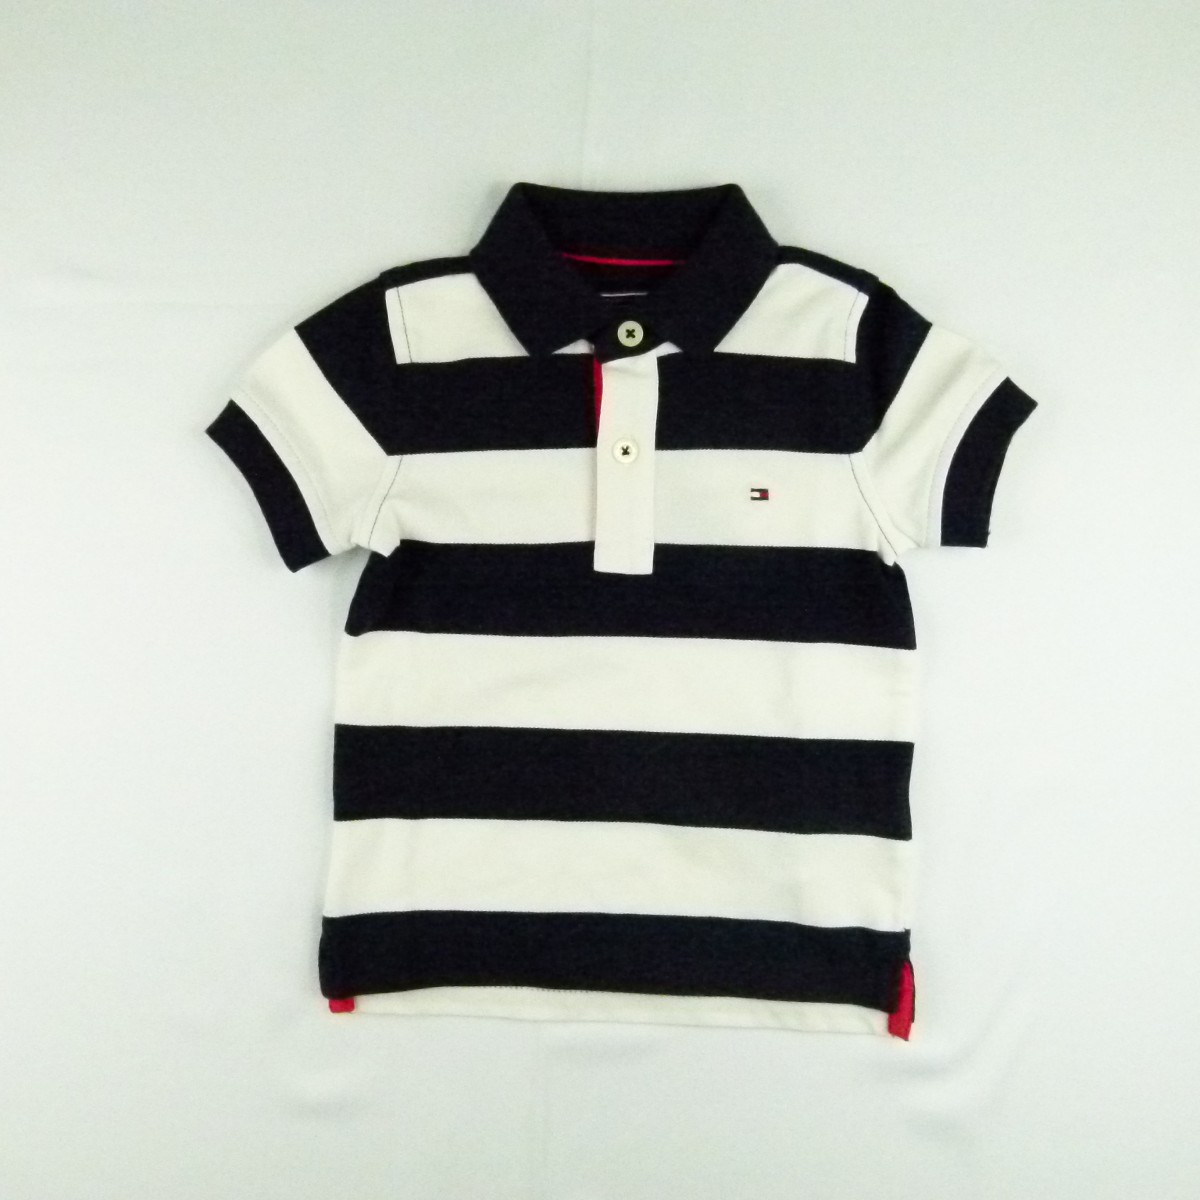 b6e1c27bf Camiseta Stretch Strip Polo Tommy Hilfiger - 033904 Azul Marinho ...